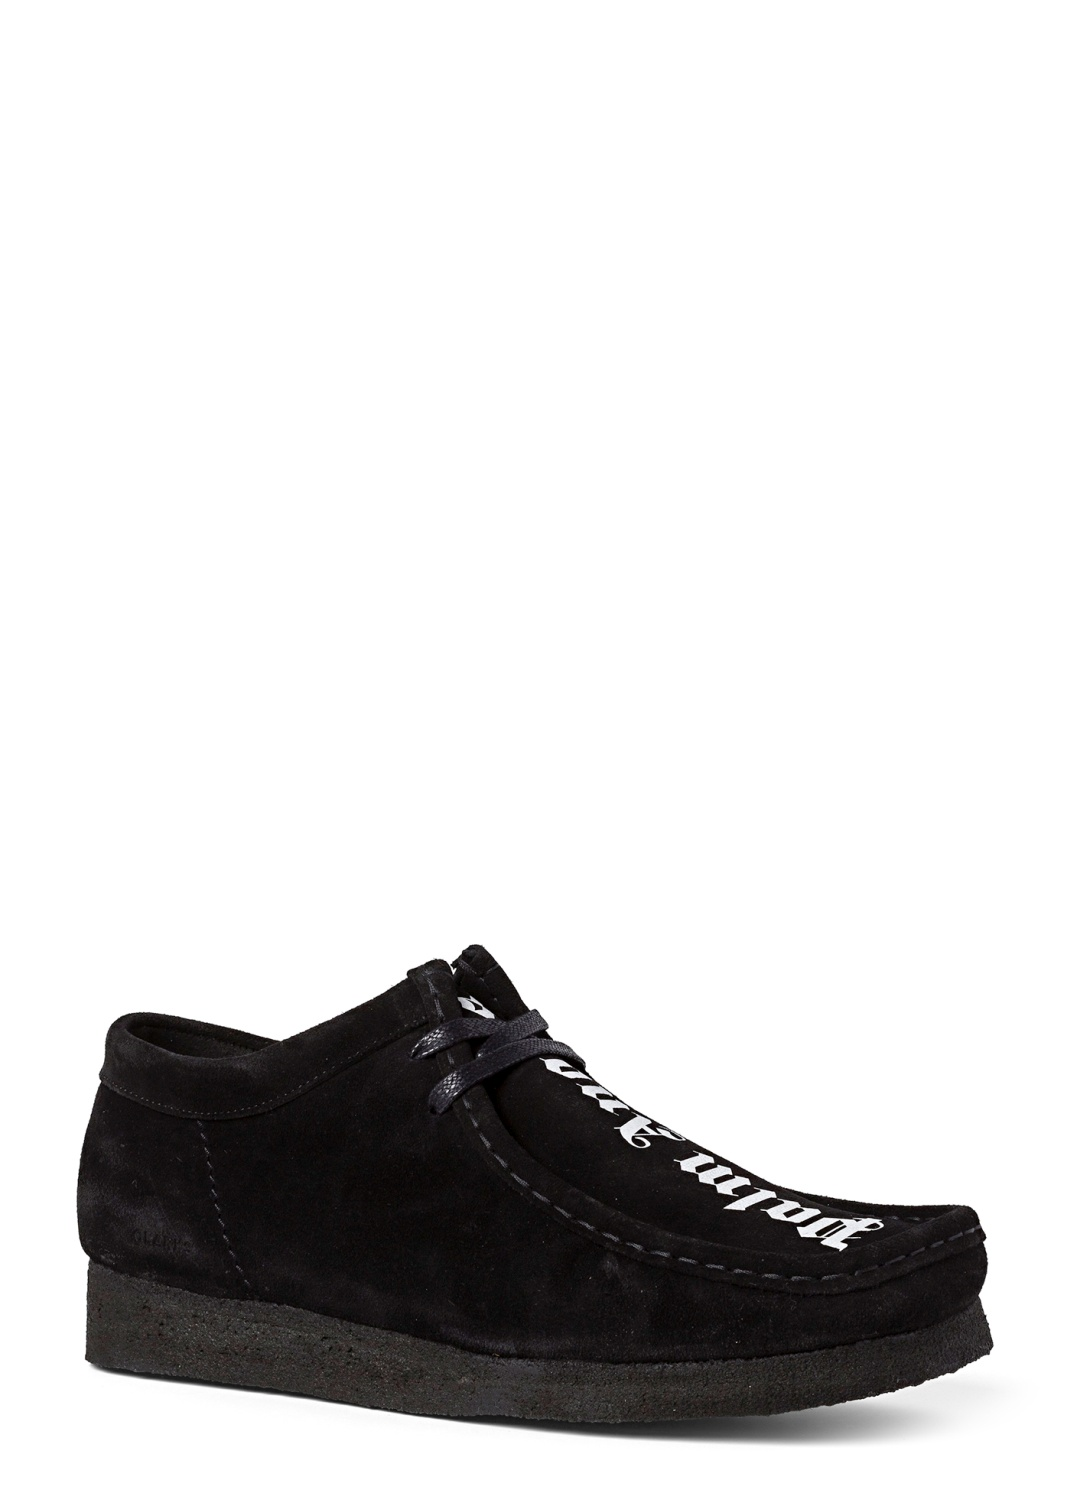 WALLABEE SUEDE  BLACK WHITE image number 1